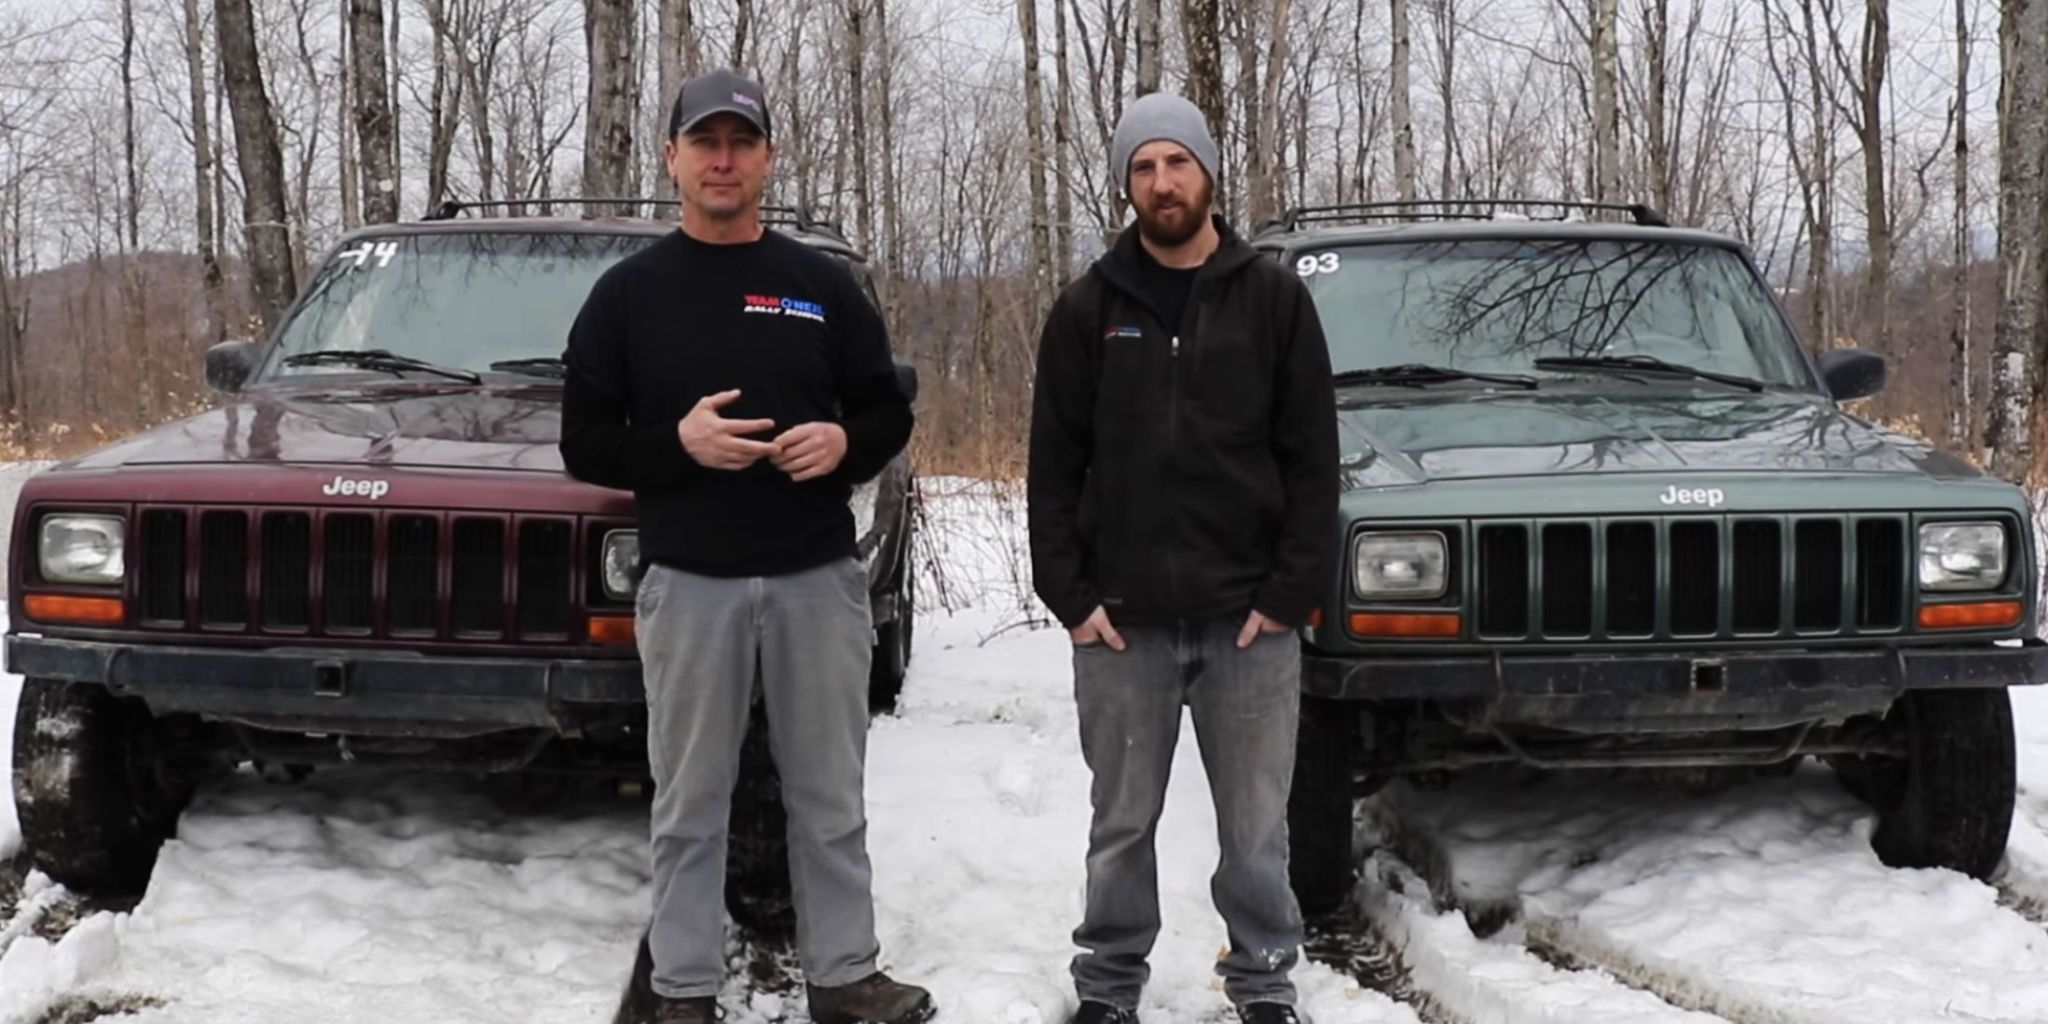 manual vs automatic which is better off road rh roadandtrack com Automatic Car manual or auto in snow